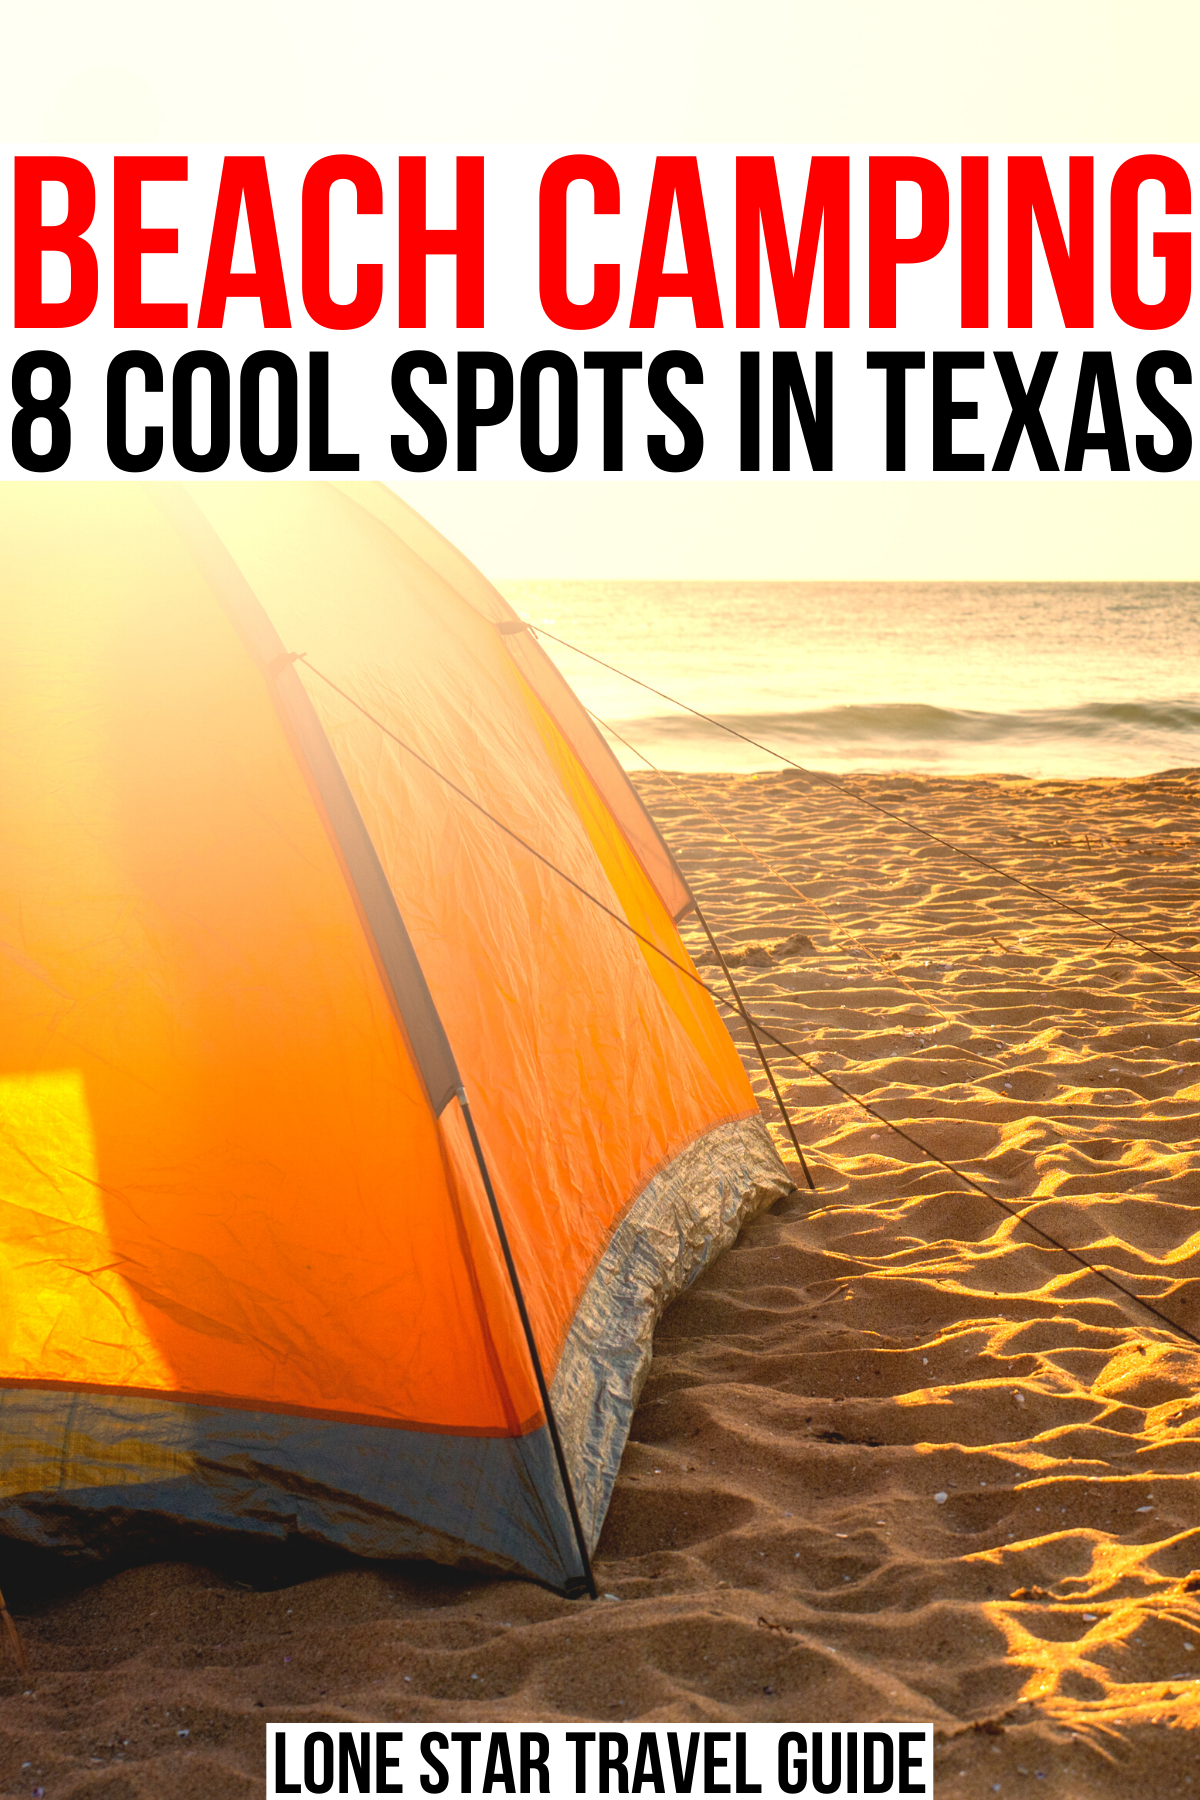 8 Cool Places To Camp On The Beach In Texas In 2021 Usa Travel Guide Travel Usa Travel Fun